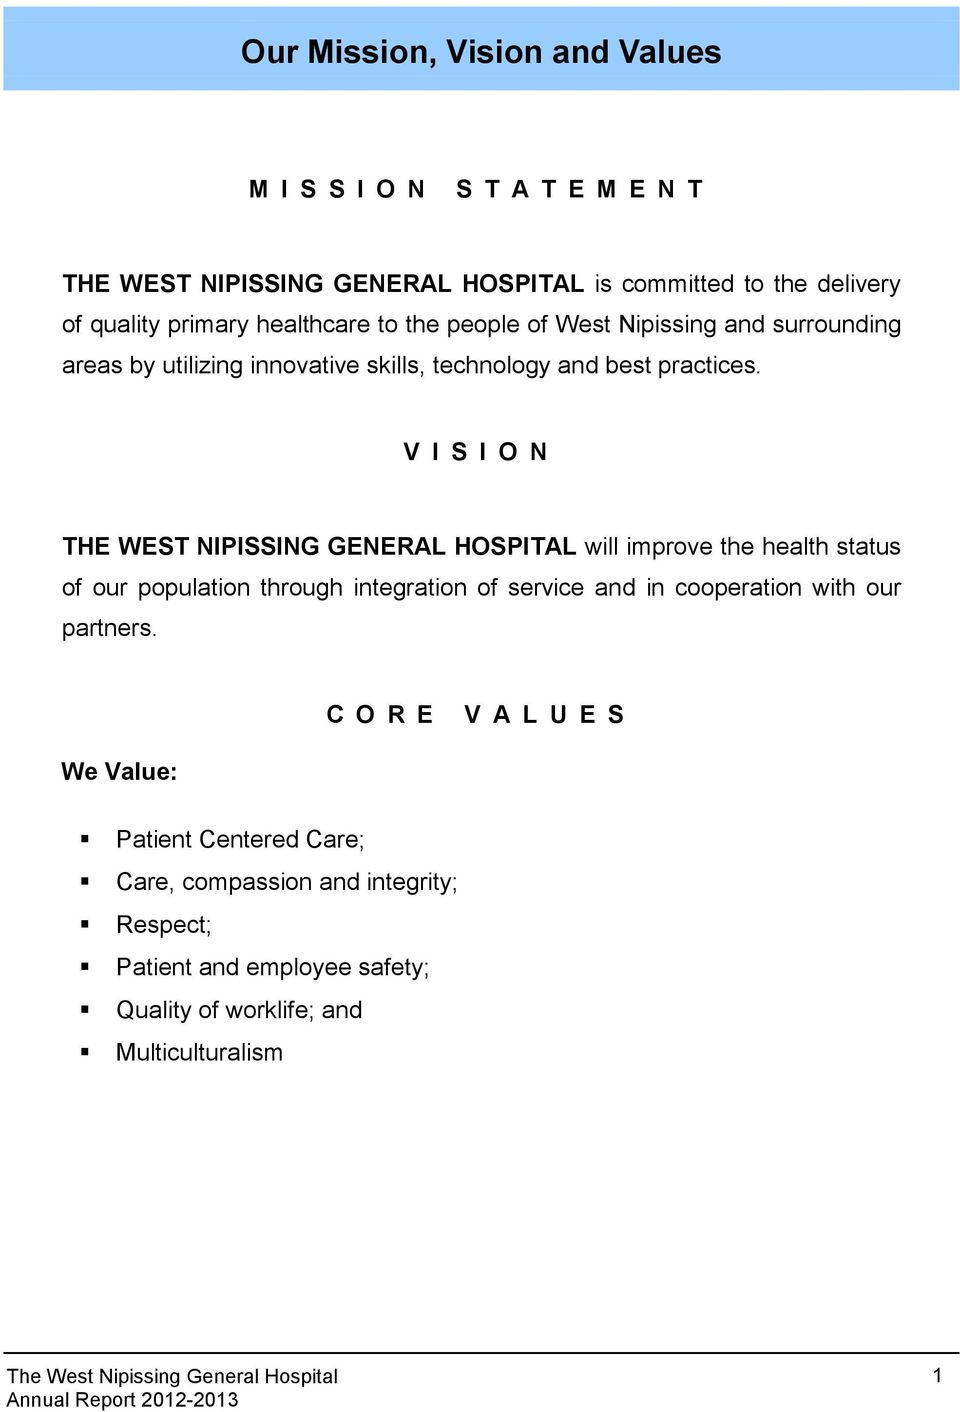 V I S I O N THE WEST NIPISSING GENERAL HOSPITAL will improve the health status of our population through integration of service and in cooperation with